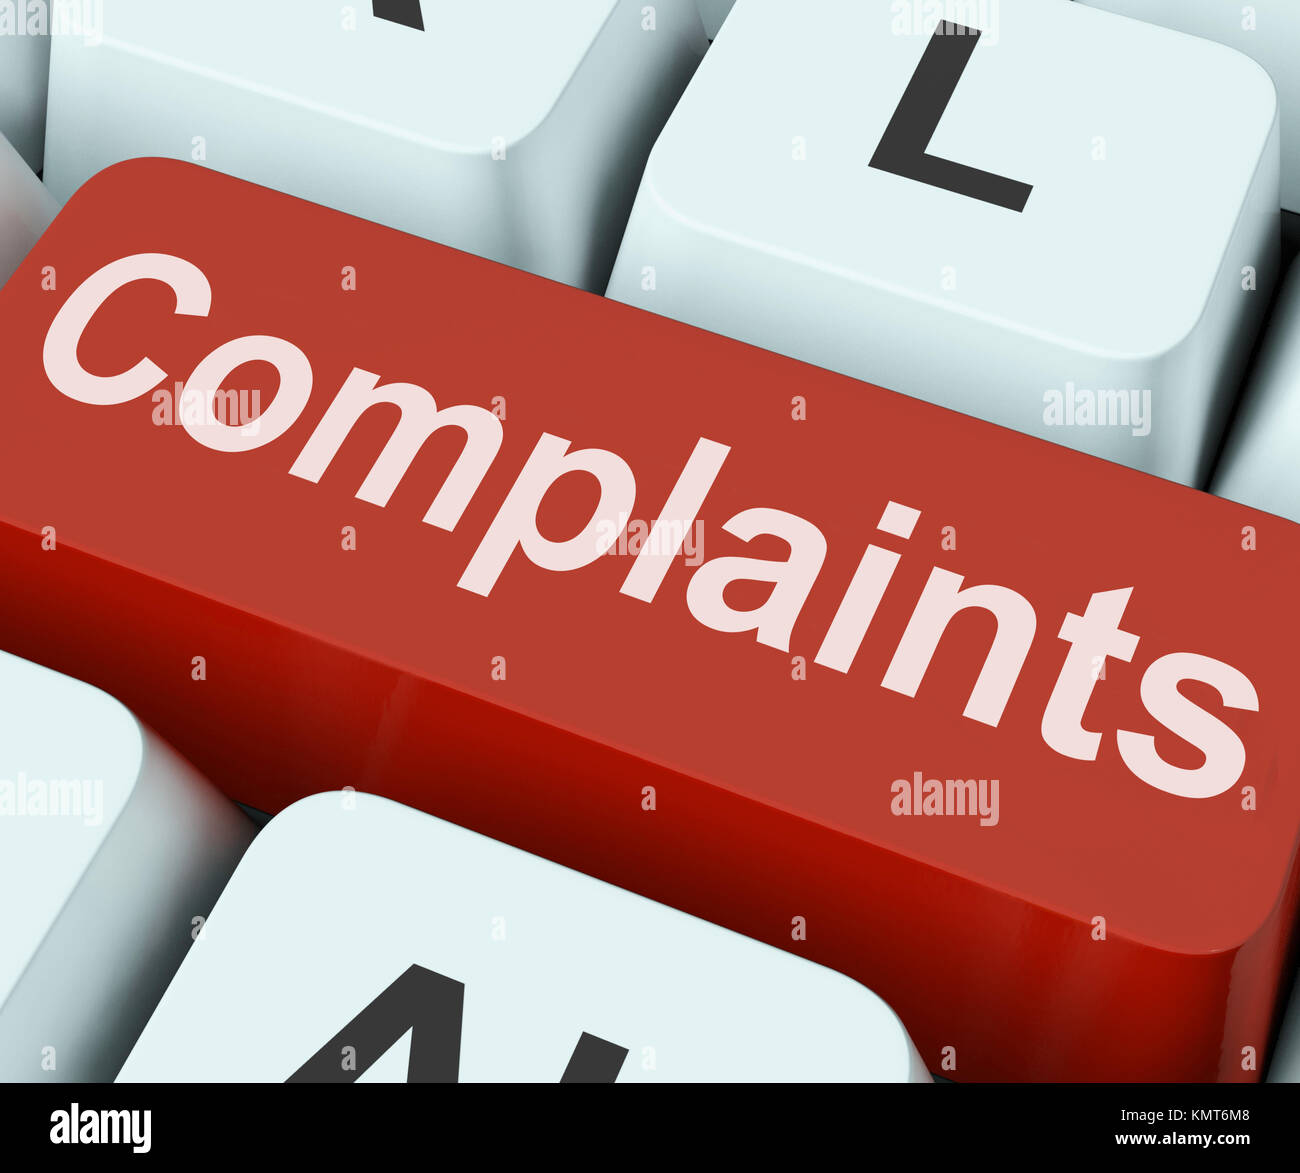 Complaints Key Showing Complaining Or Moaning Online - Stock Image